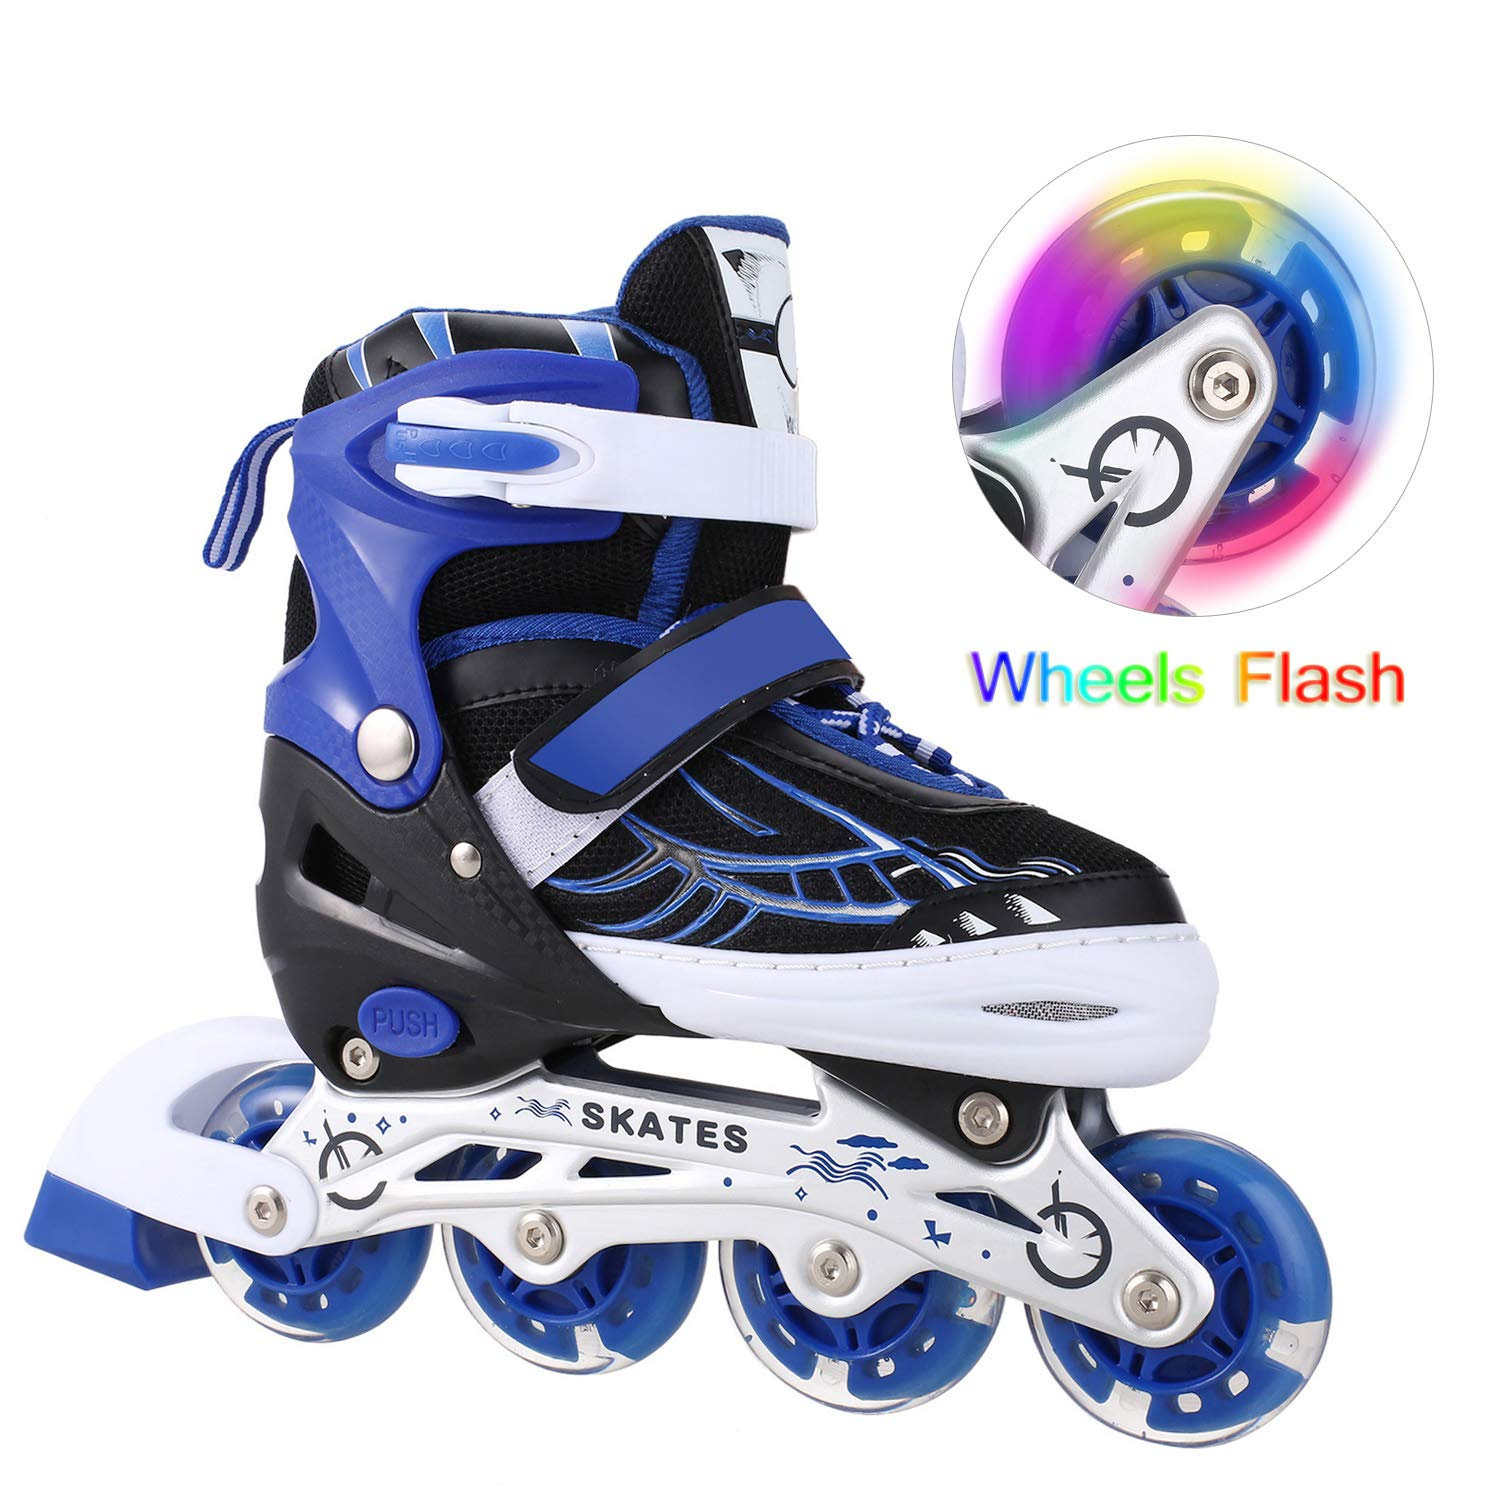 Kuxuan Saya Roller Blades Adjustable for Kids,Girls Inline Skates with All Wheels Light up,Fun Illuminating for Youth and Ladies